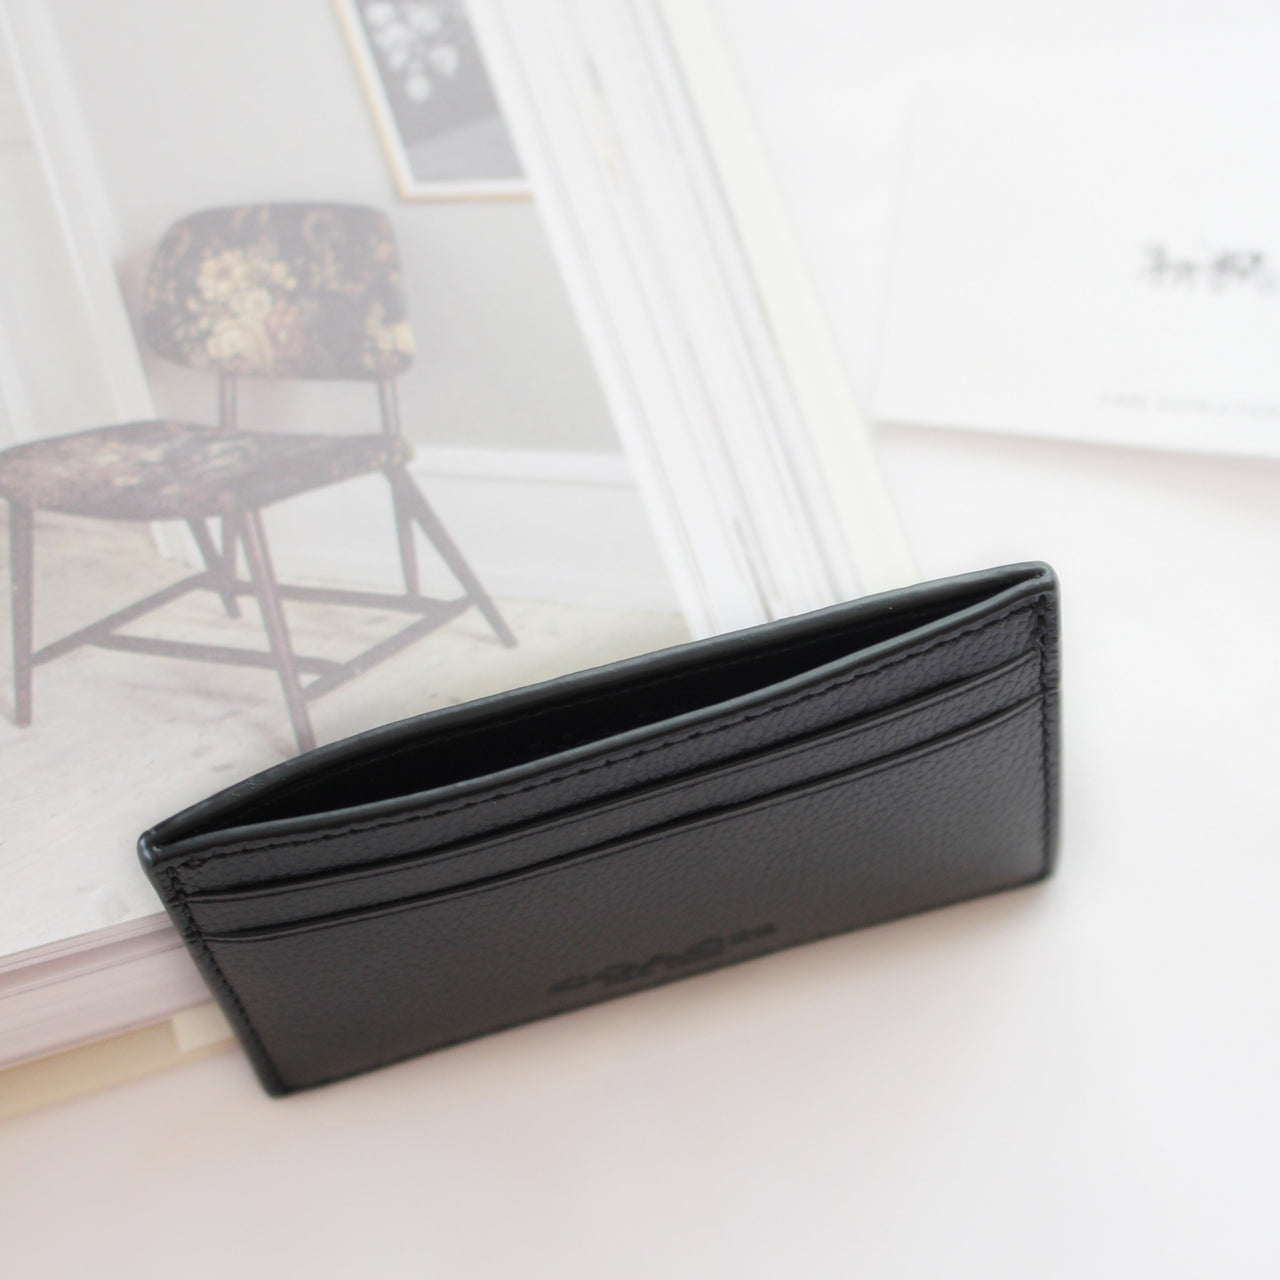 COACH MONEY CLIP CARD CASE IN CALF LEATHER - Lovely Madness